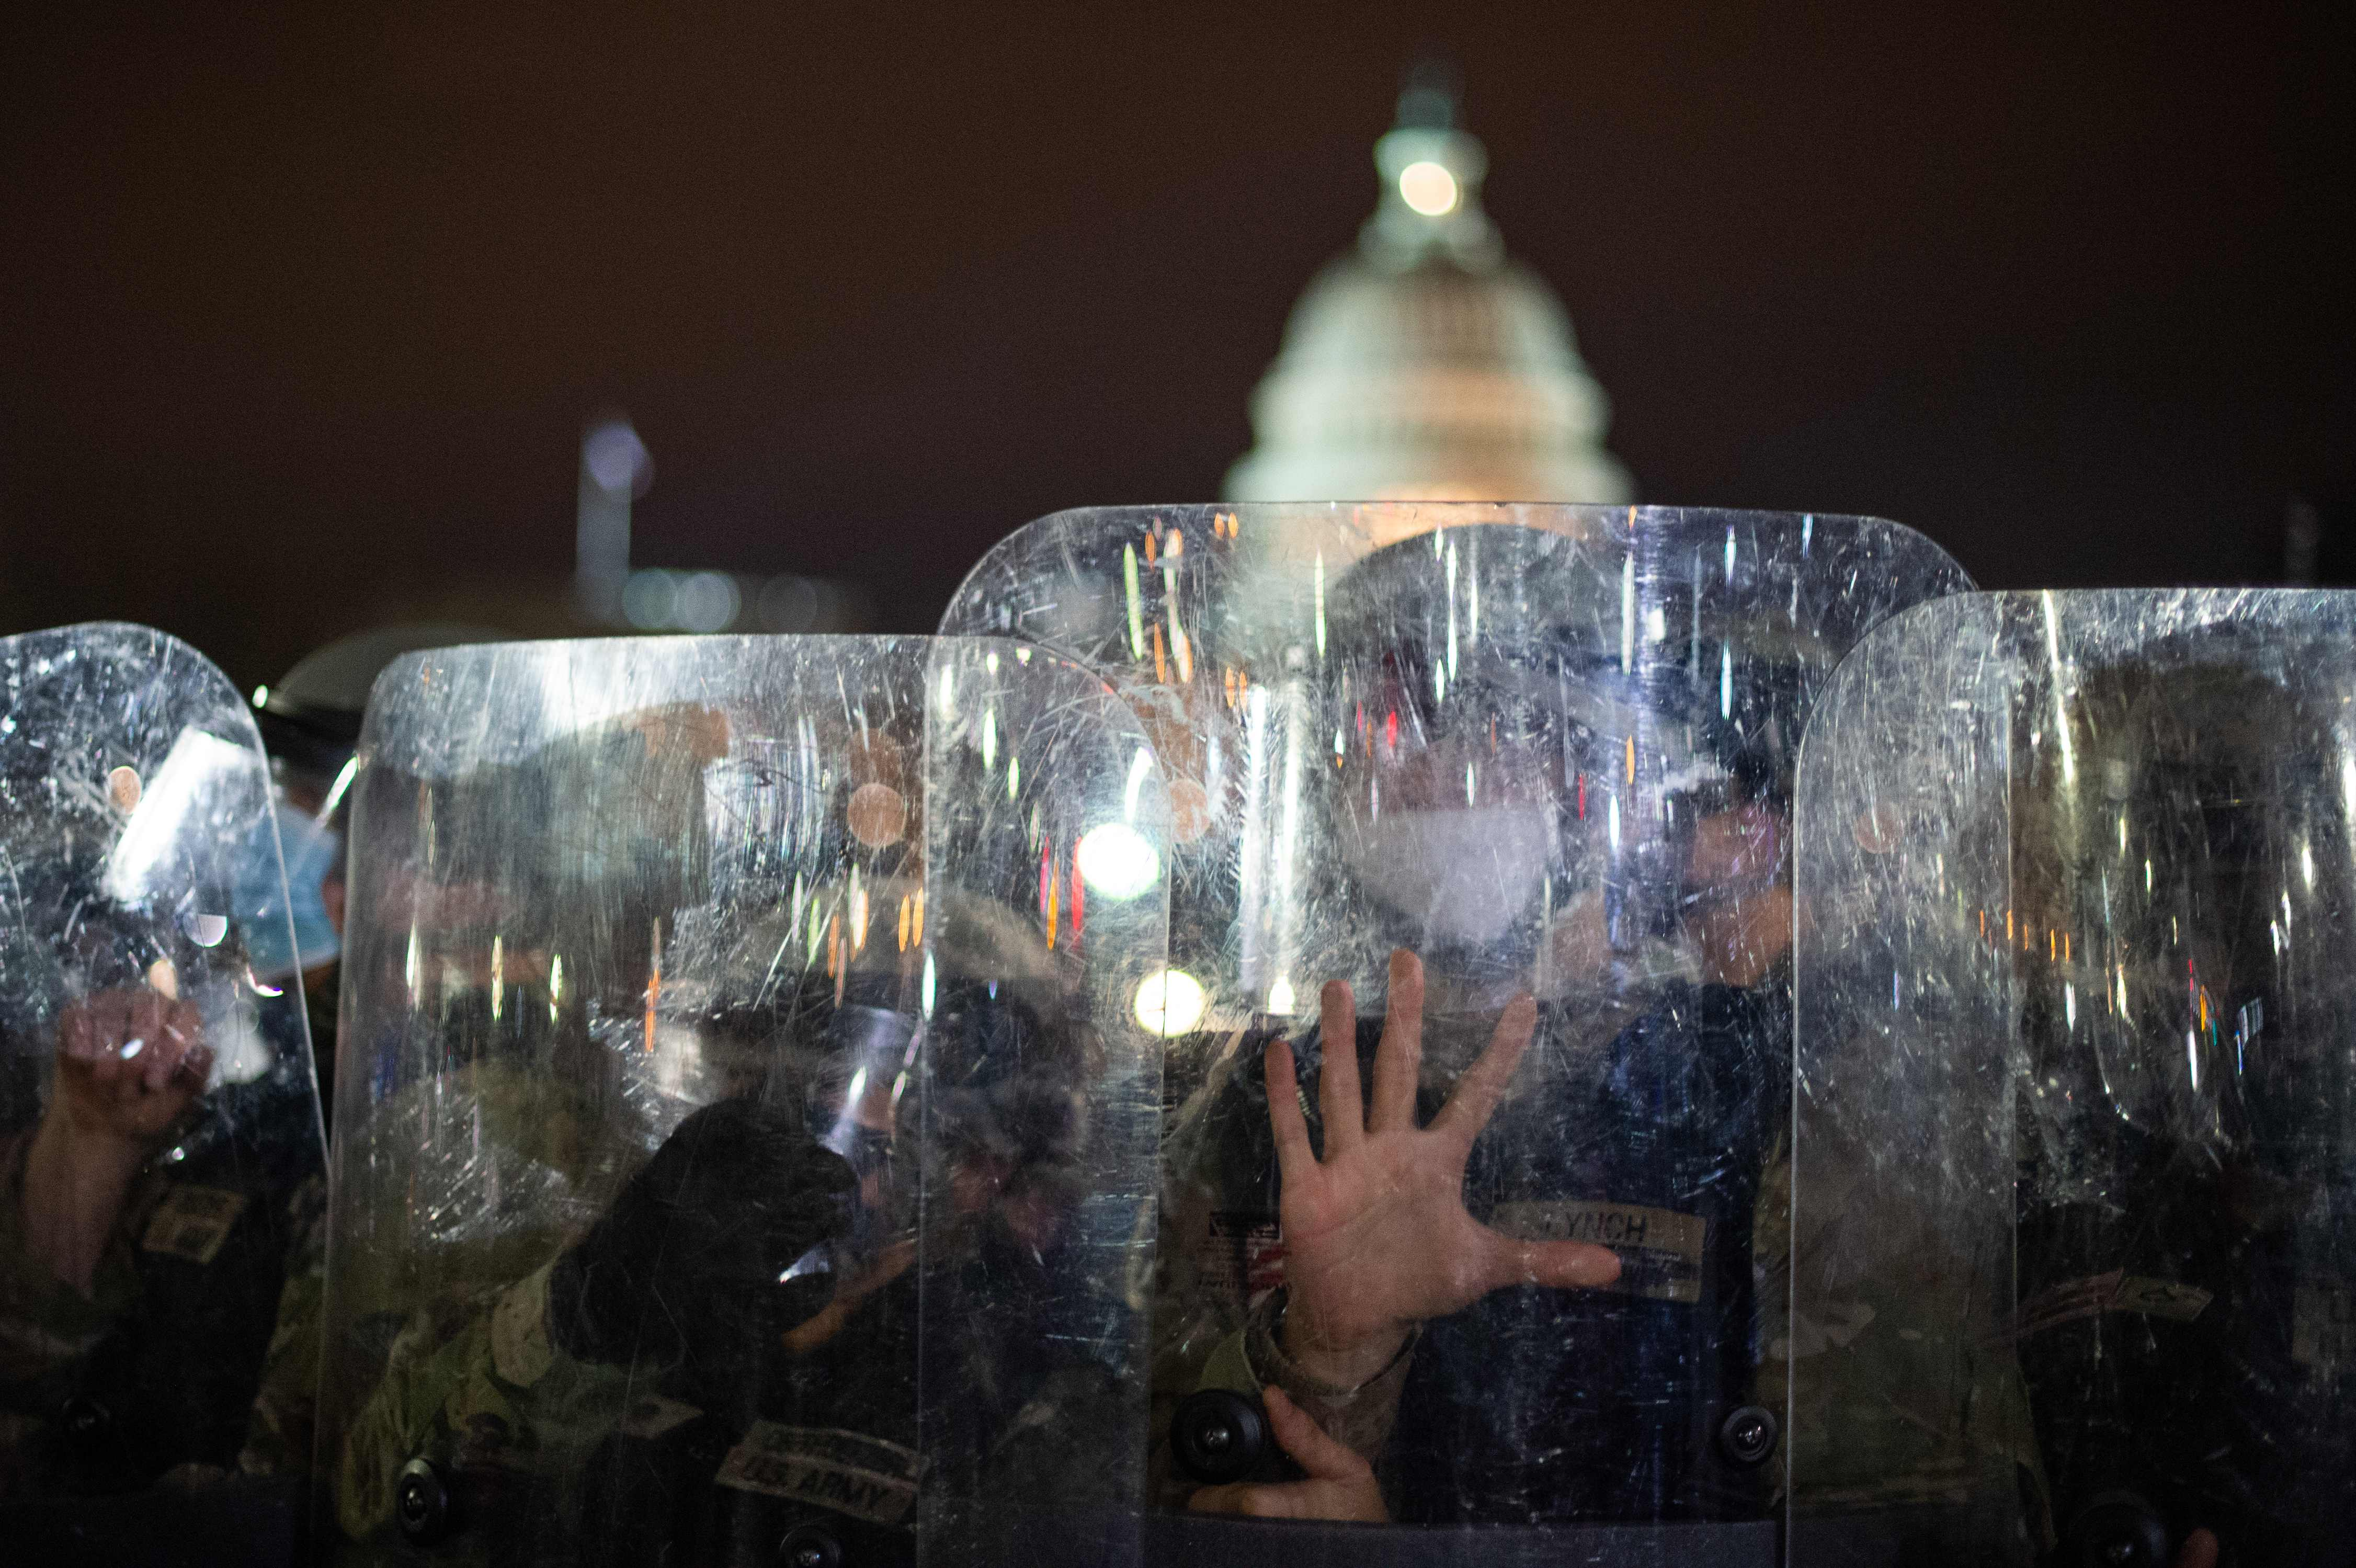 Rioting by angry Trump mob at U.S. Capitol unleashes widespread condemnation of Facebook, Twitter and YouTube